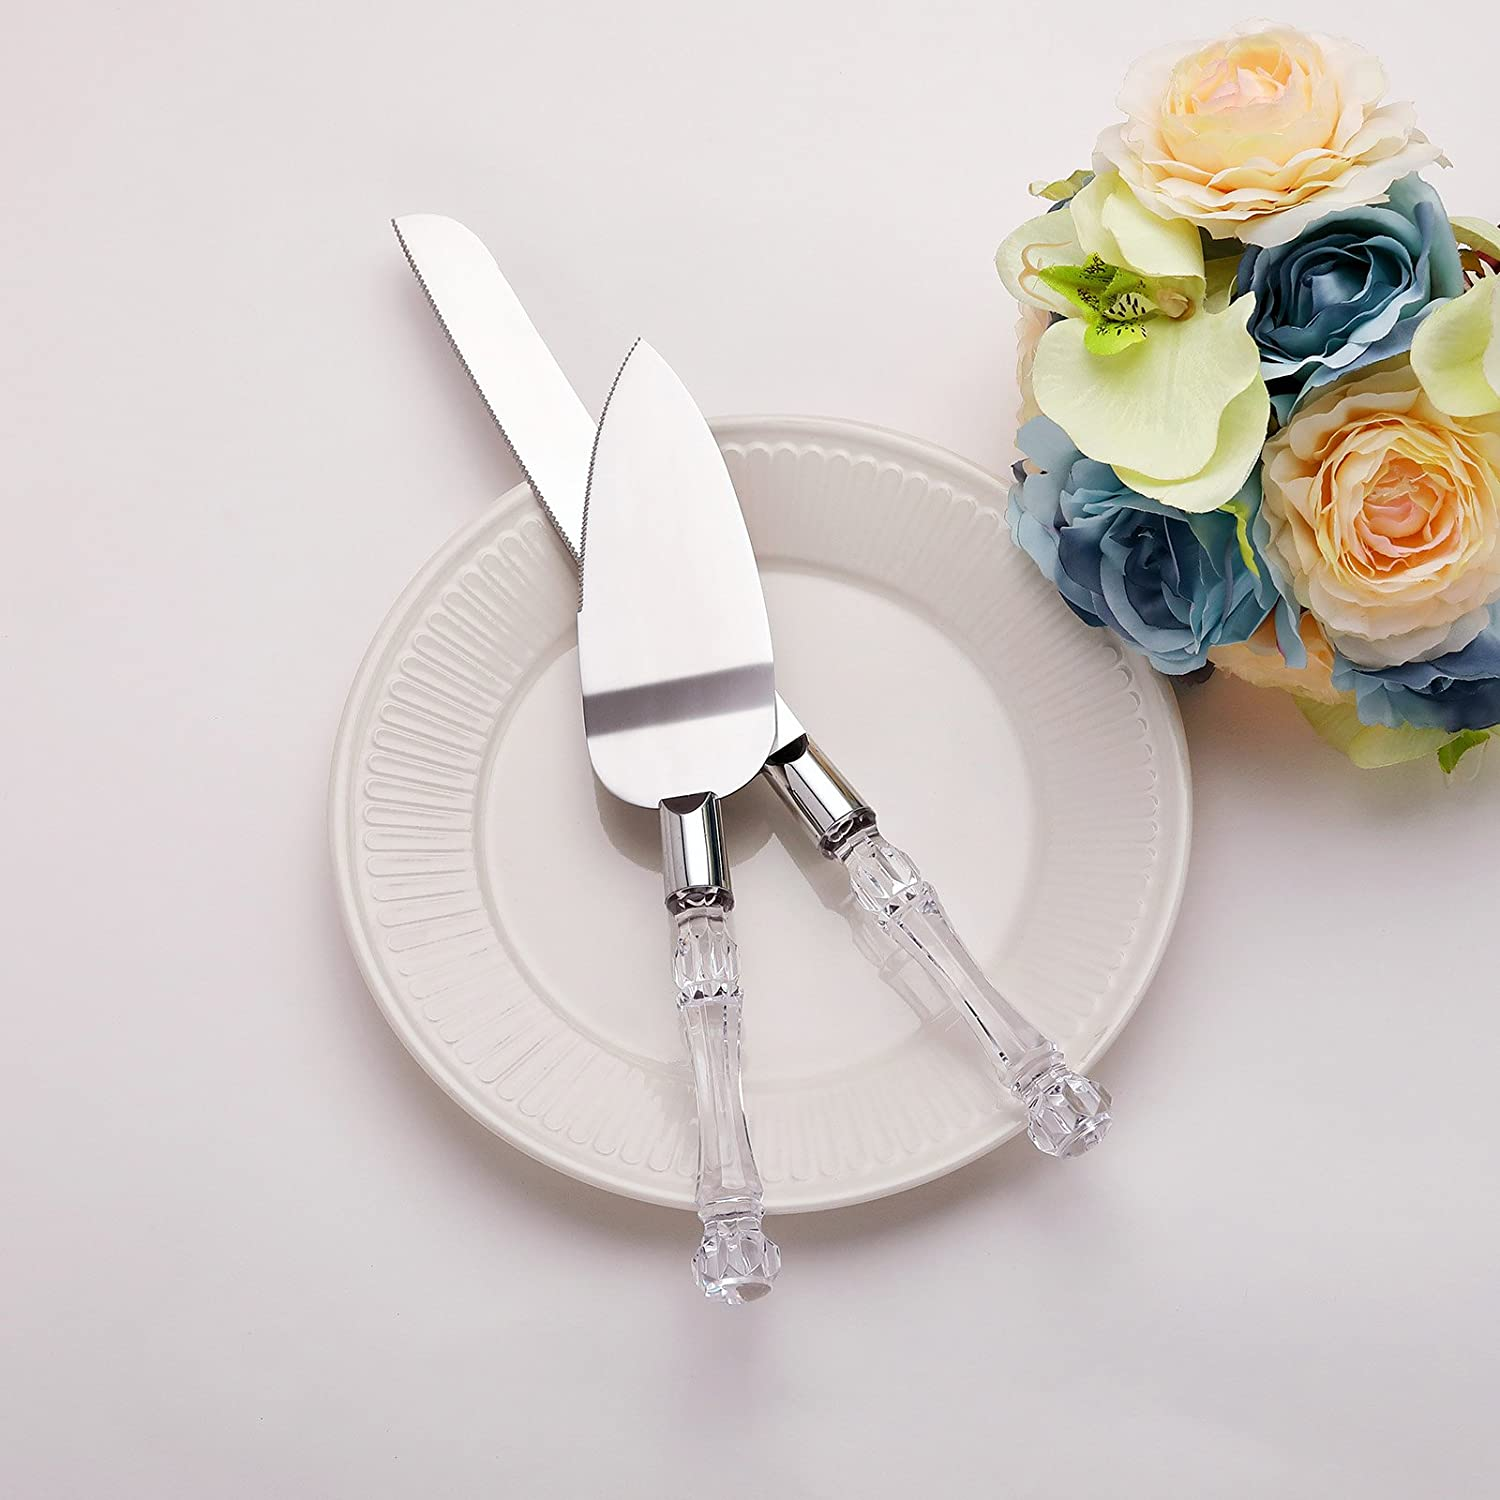 AW Stainless Steel Wedding Cake Knife and Server Set - Cake Knife 13.2 Inch, Cake Server 10.8 Inch - Gift for Wedding, Anniversary, Engagement, Birthday AWEI